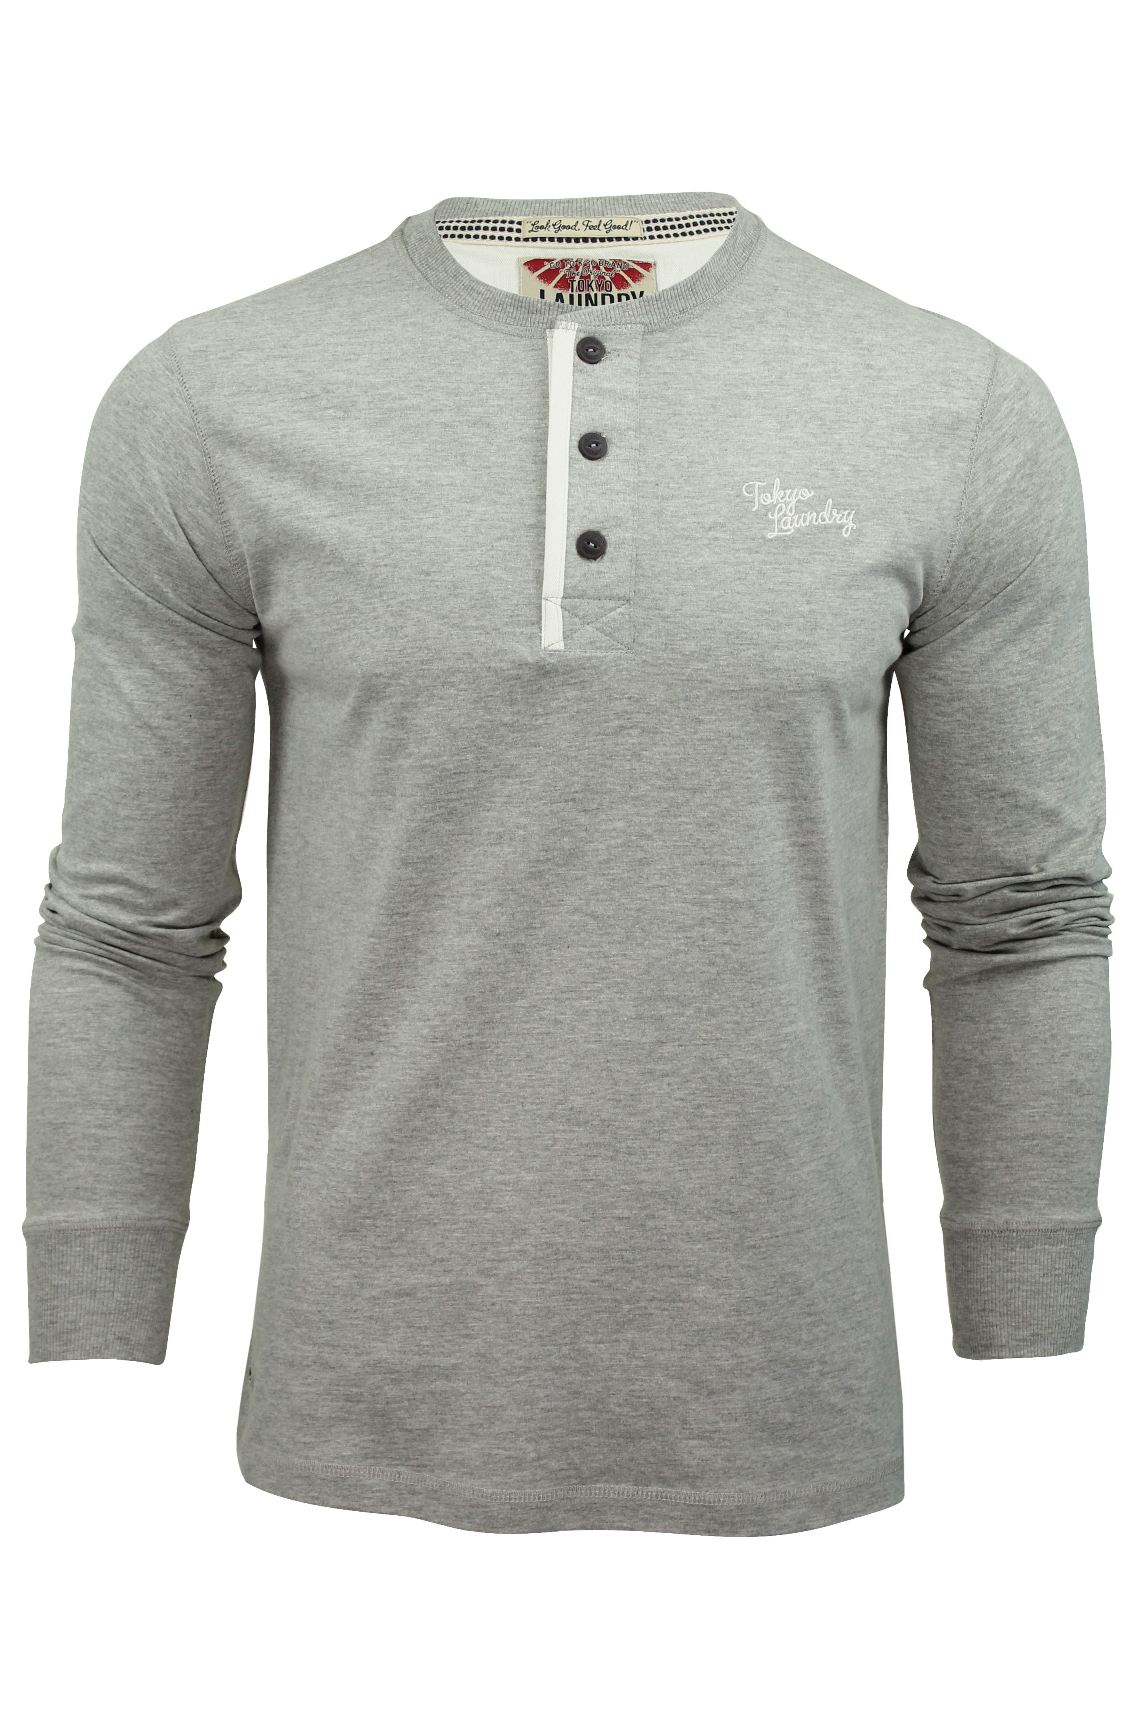 Mens long sleeved t shirt by tokyo laundry grandad neck ebay for Mens long sleeved t shirts